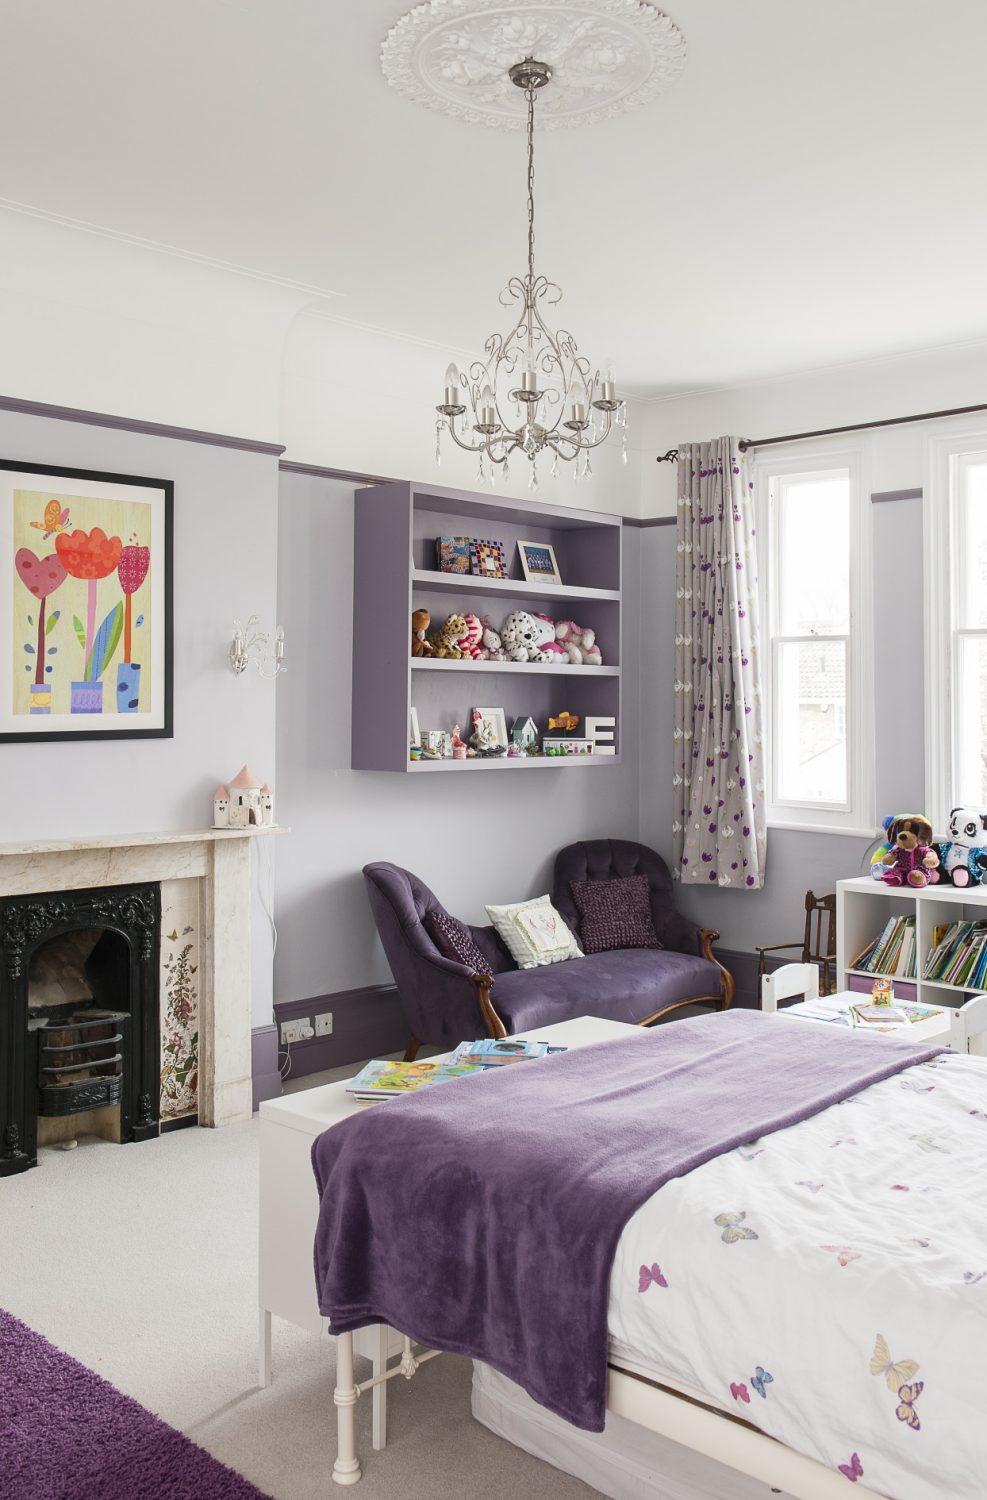 Daughter Emma's room used to be the original master bedroom and is now a spacious retreat decorated in hues of purple